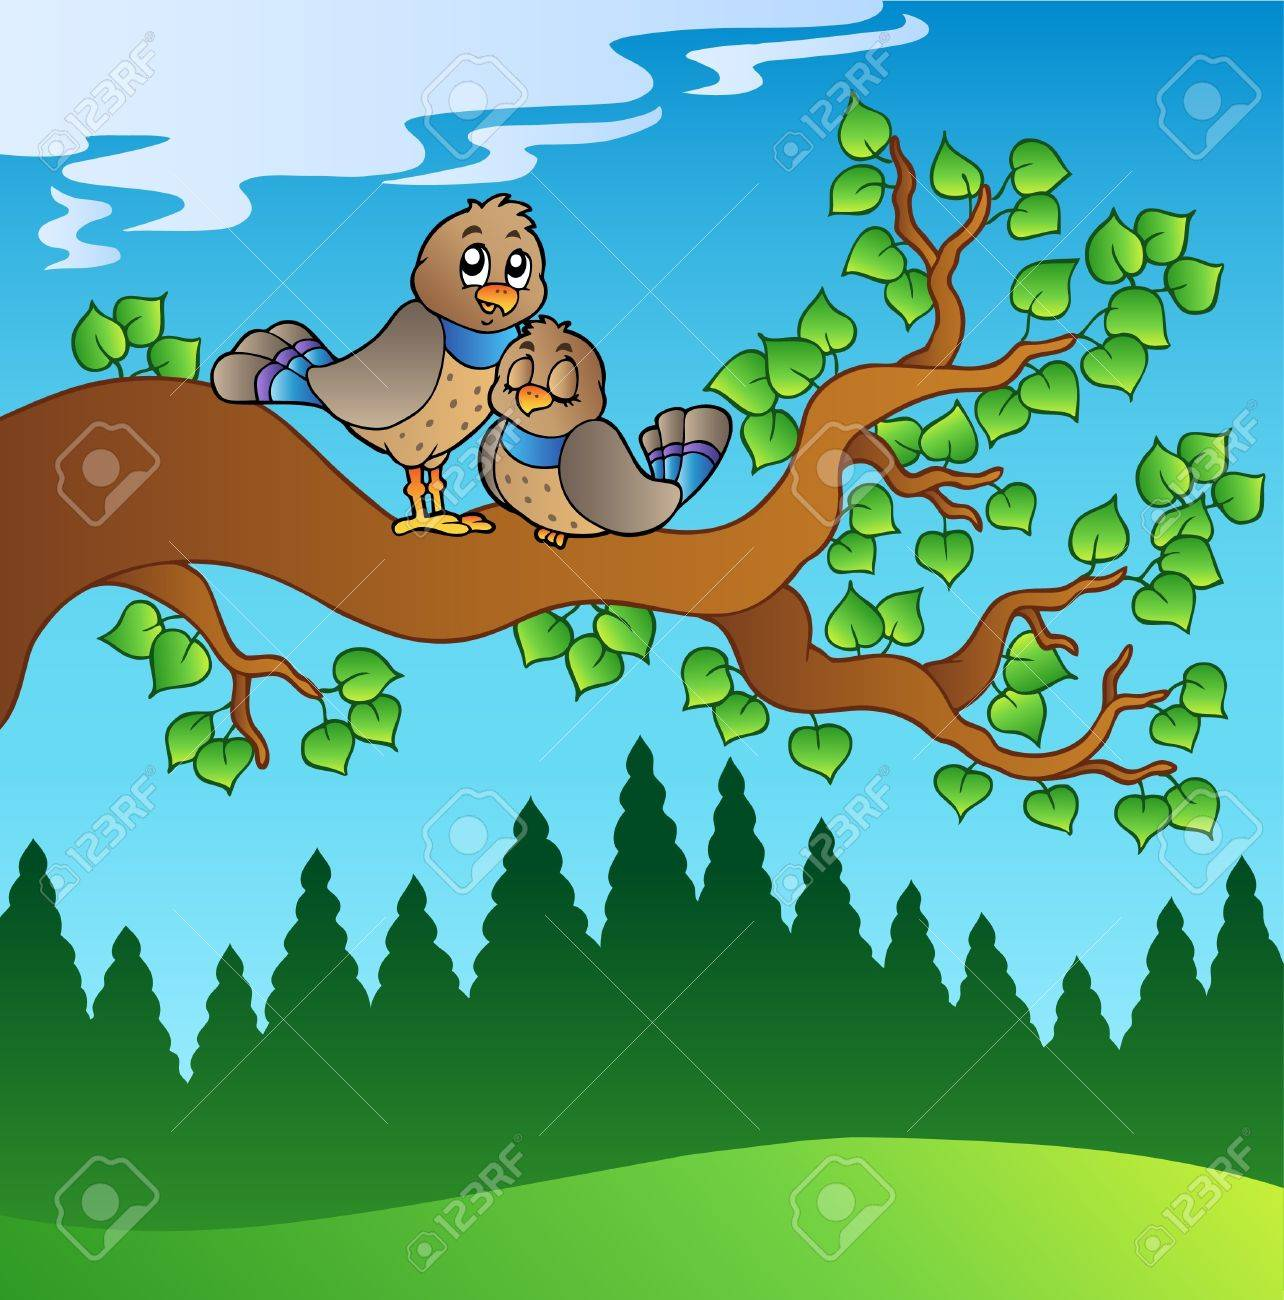 Two cute birds sitting on branch - illustration. Stock Vector - 8475475